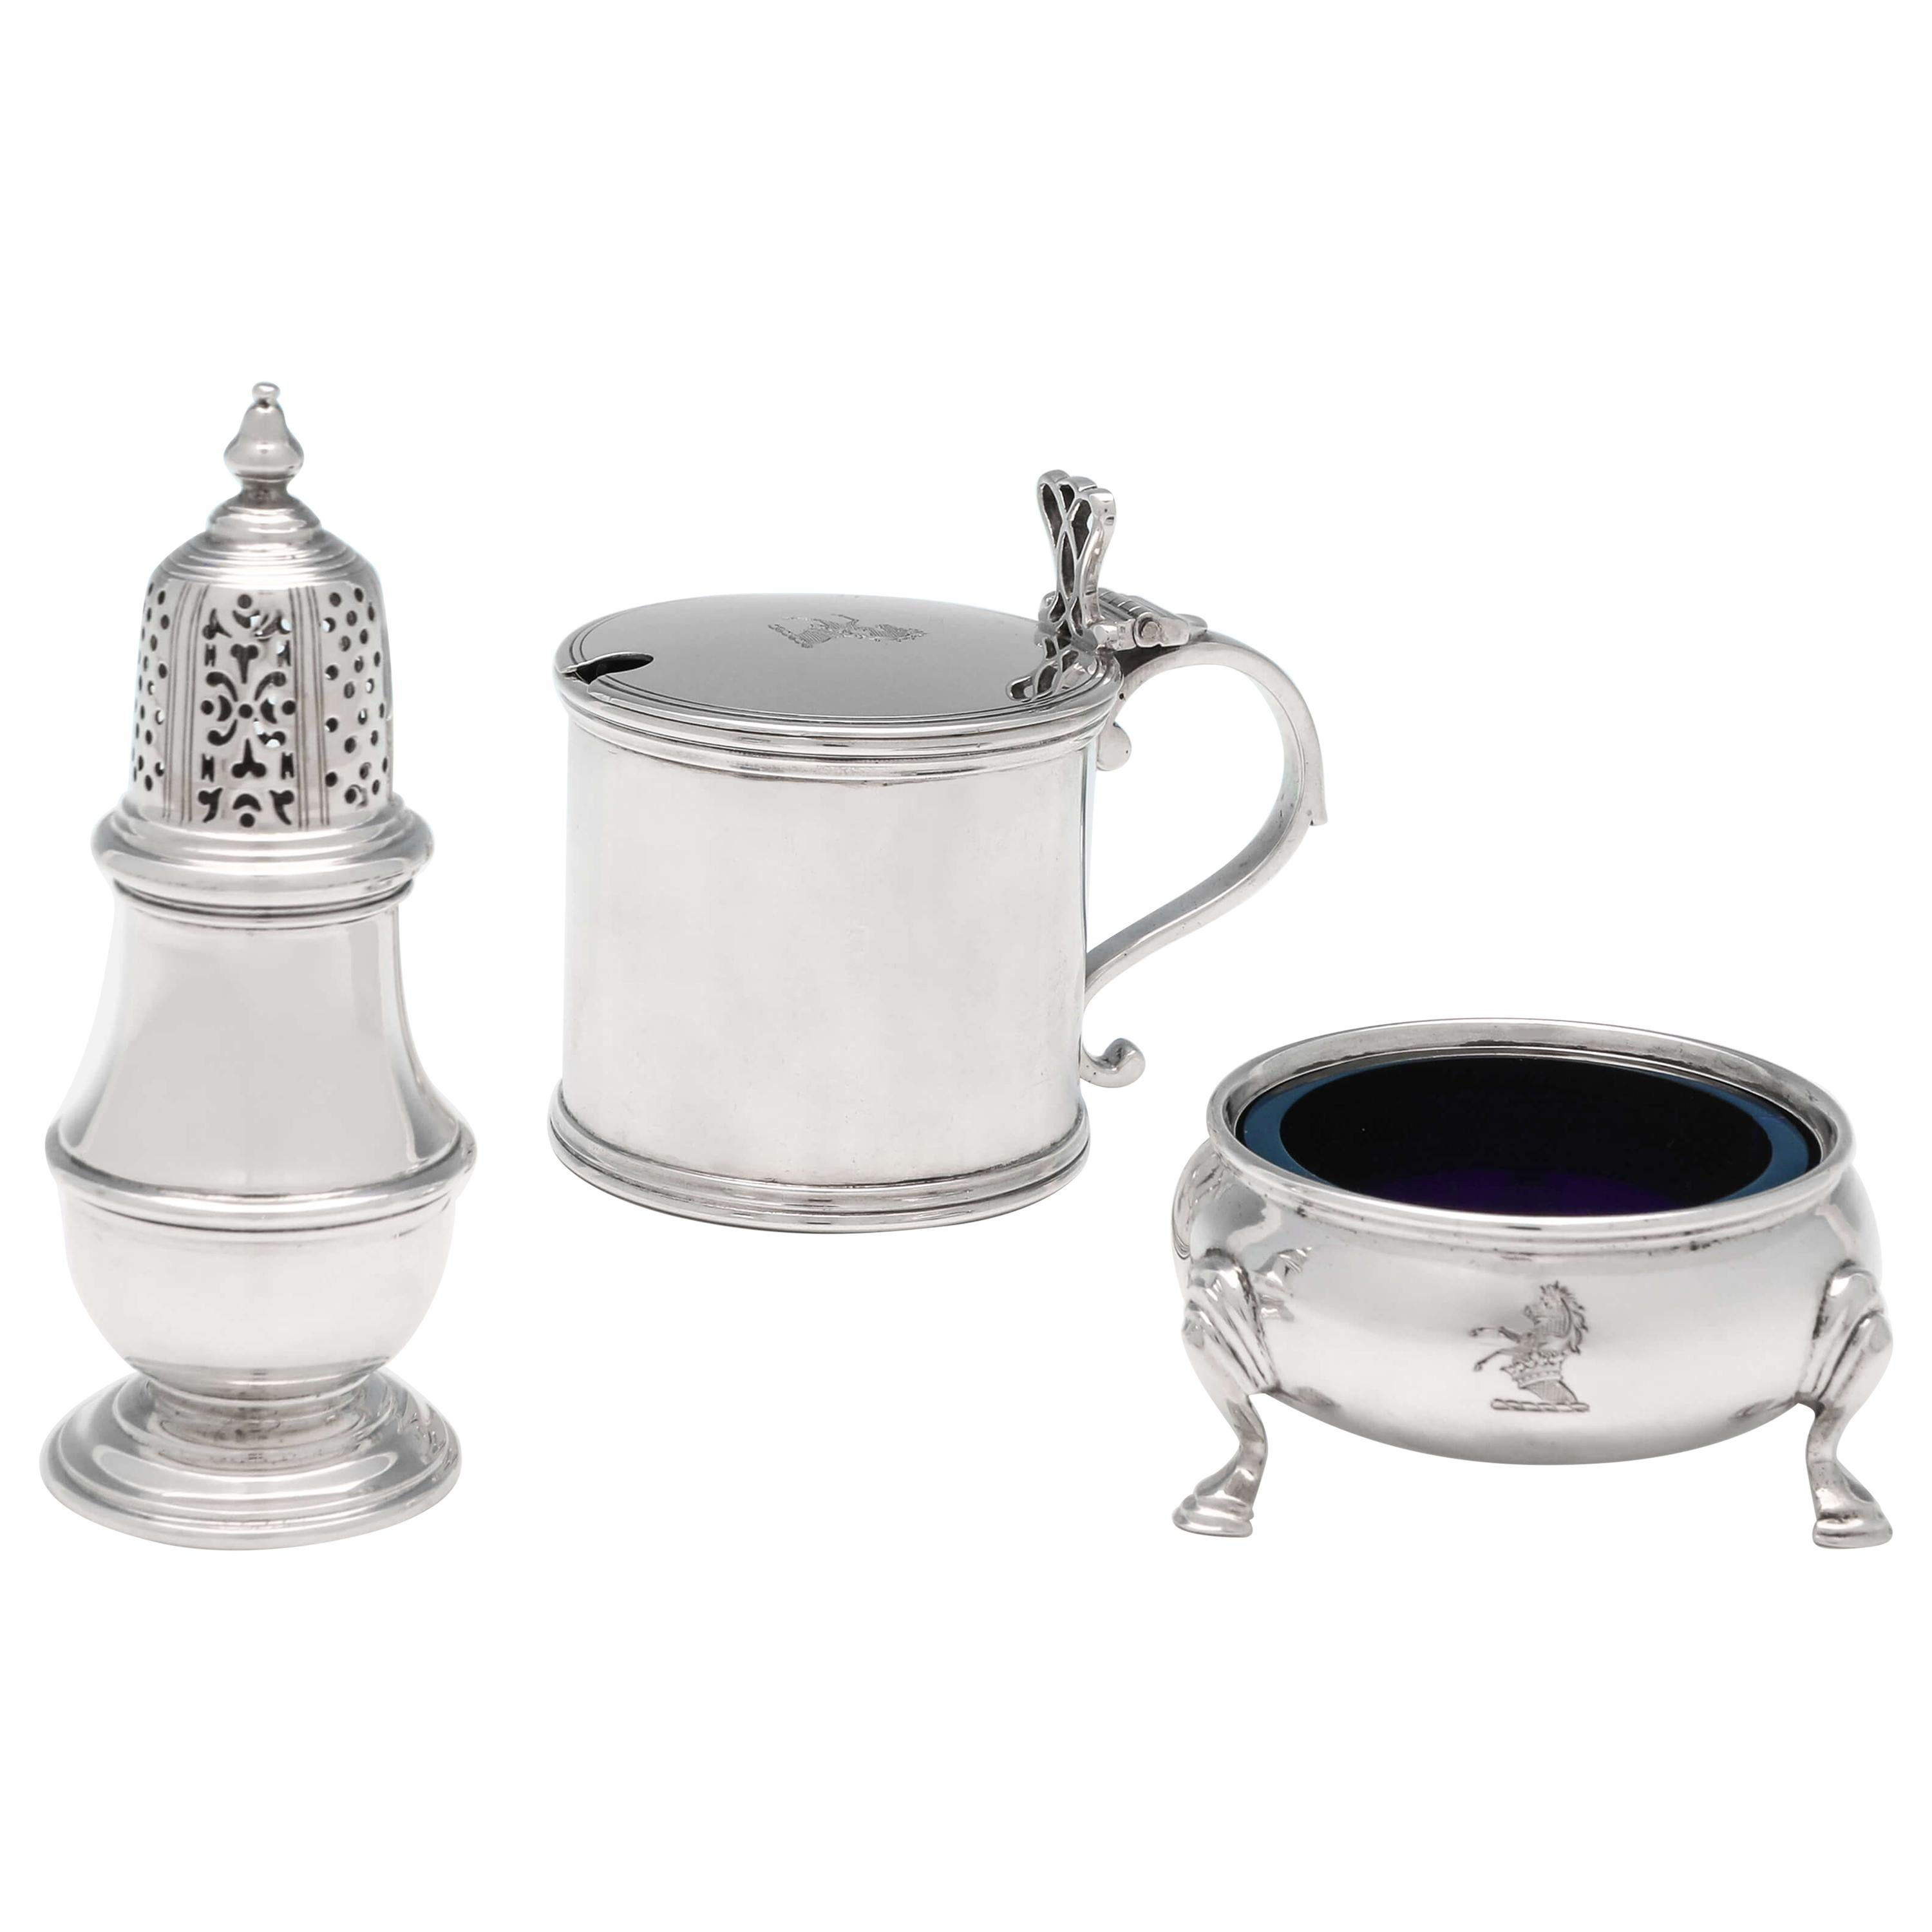 Antique Sterling Silver Condiment Set by Richard Comyns, London, 1919